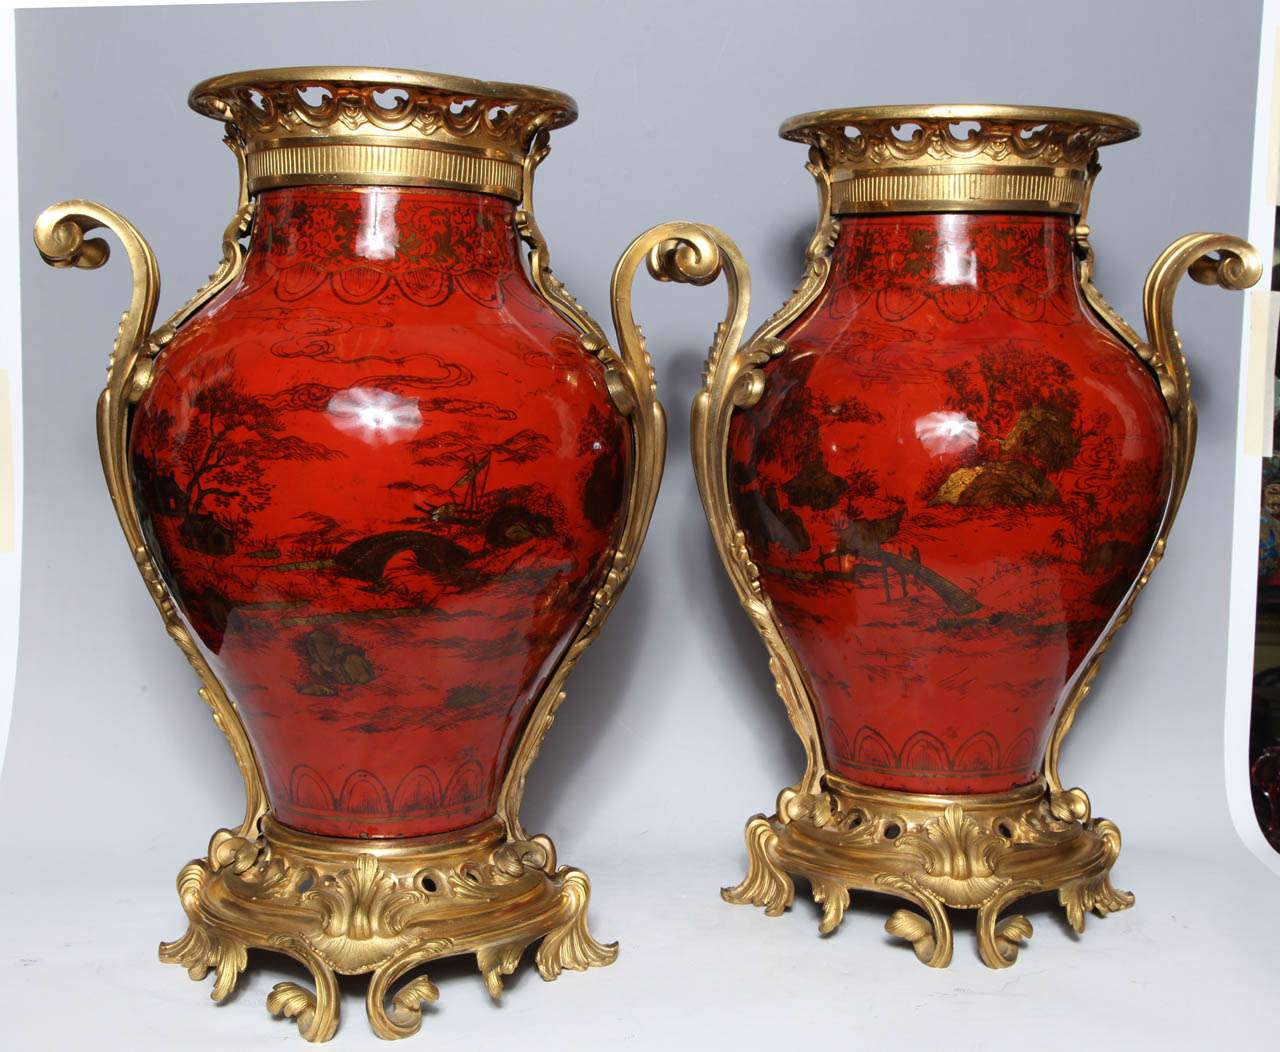 A large pair of antique French transitional period red lacquer, chinoiserie decorated ormolu-mounted vases with gilt bronze Rococo mounts. The vibrant color of these highly polished vases is enhanced by the beautiful scenes of mountains and rivers